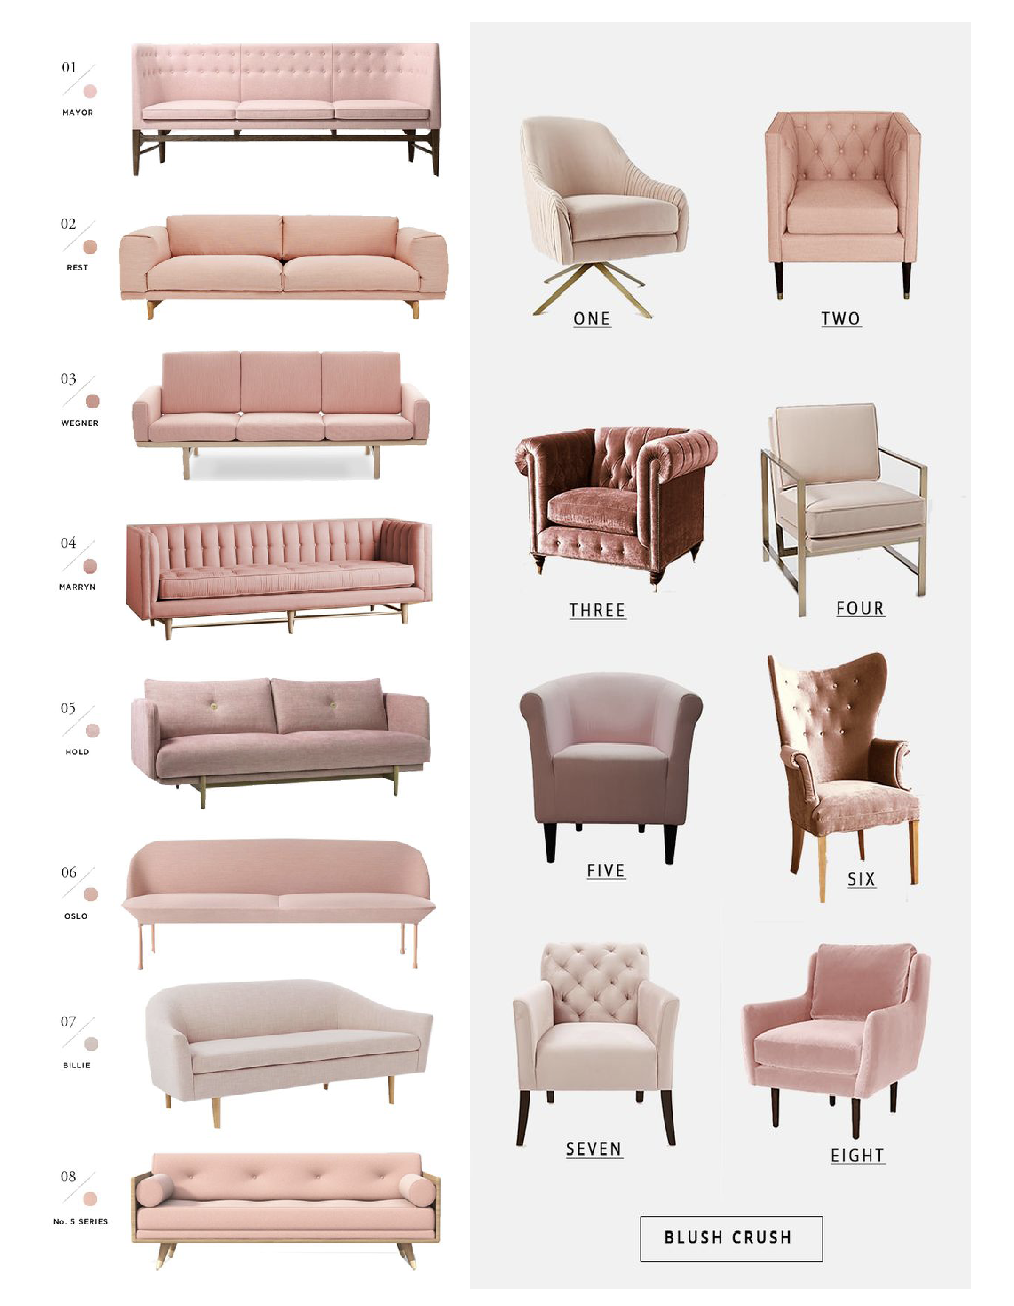 Living Room Interior Design Pdf: Blush Crush: Why We're Putting This Color In Our Home NOW